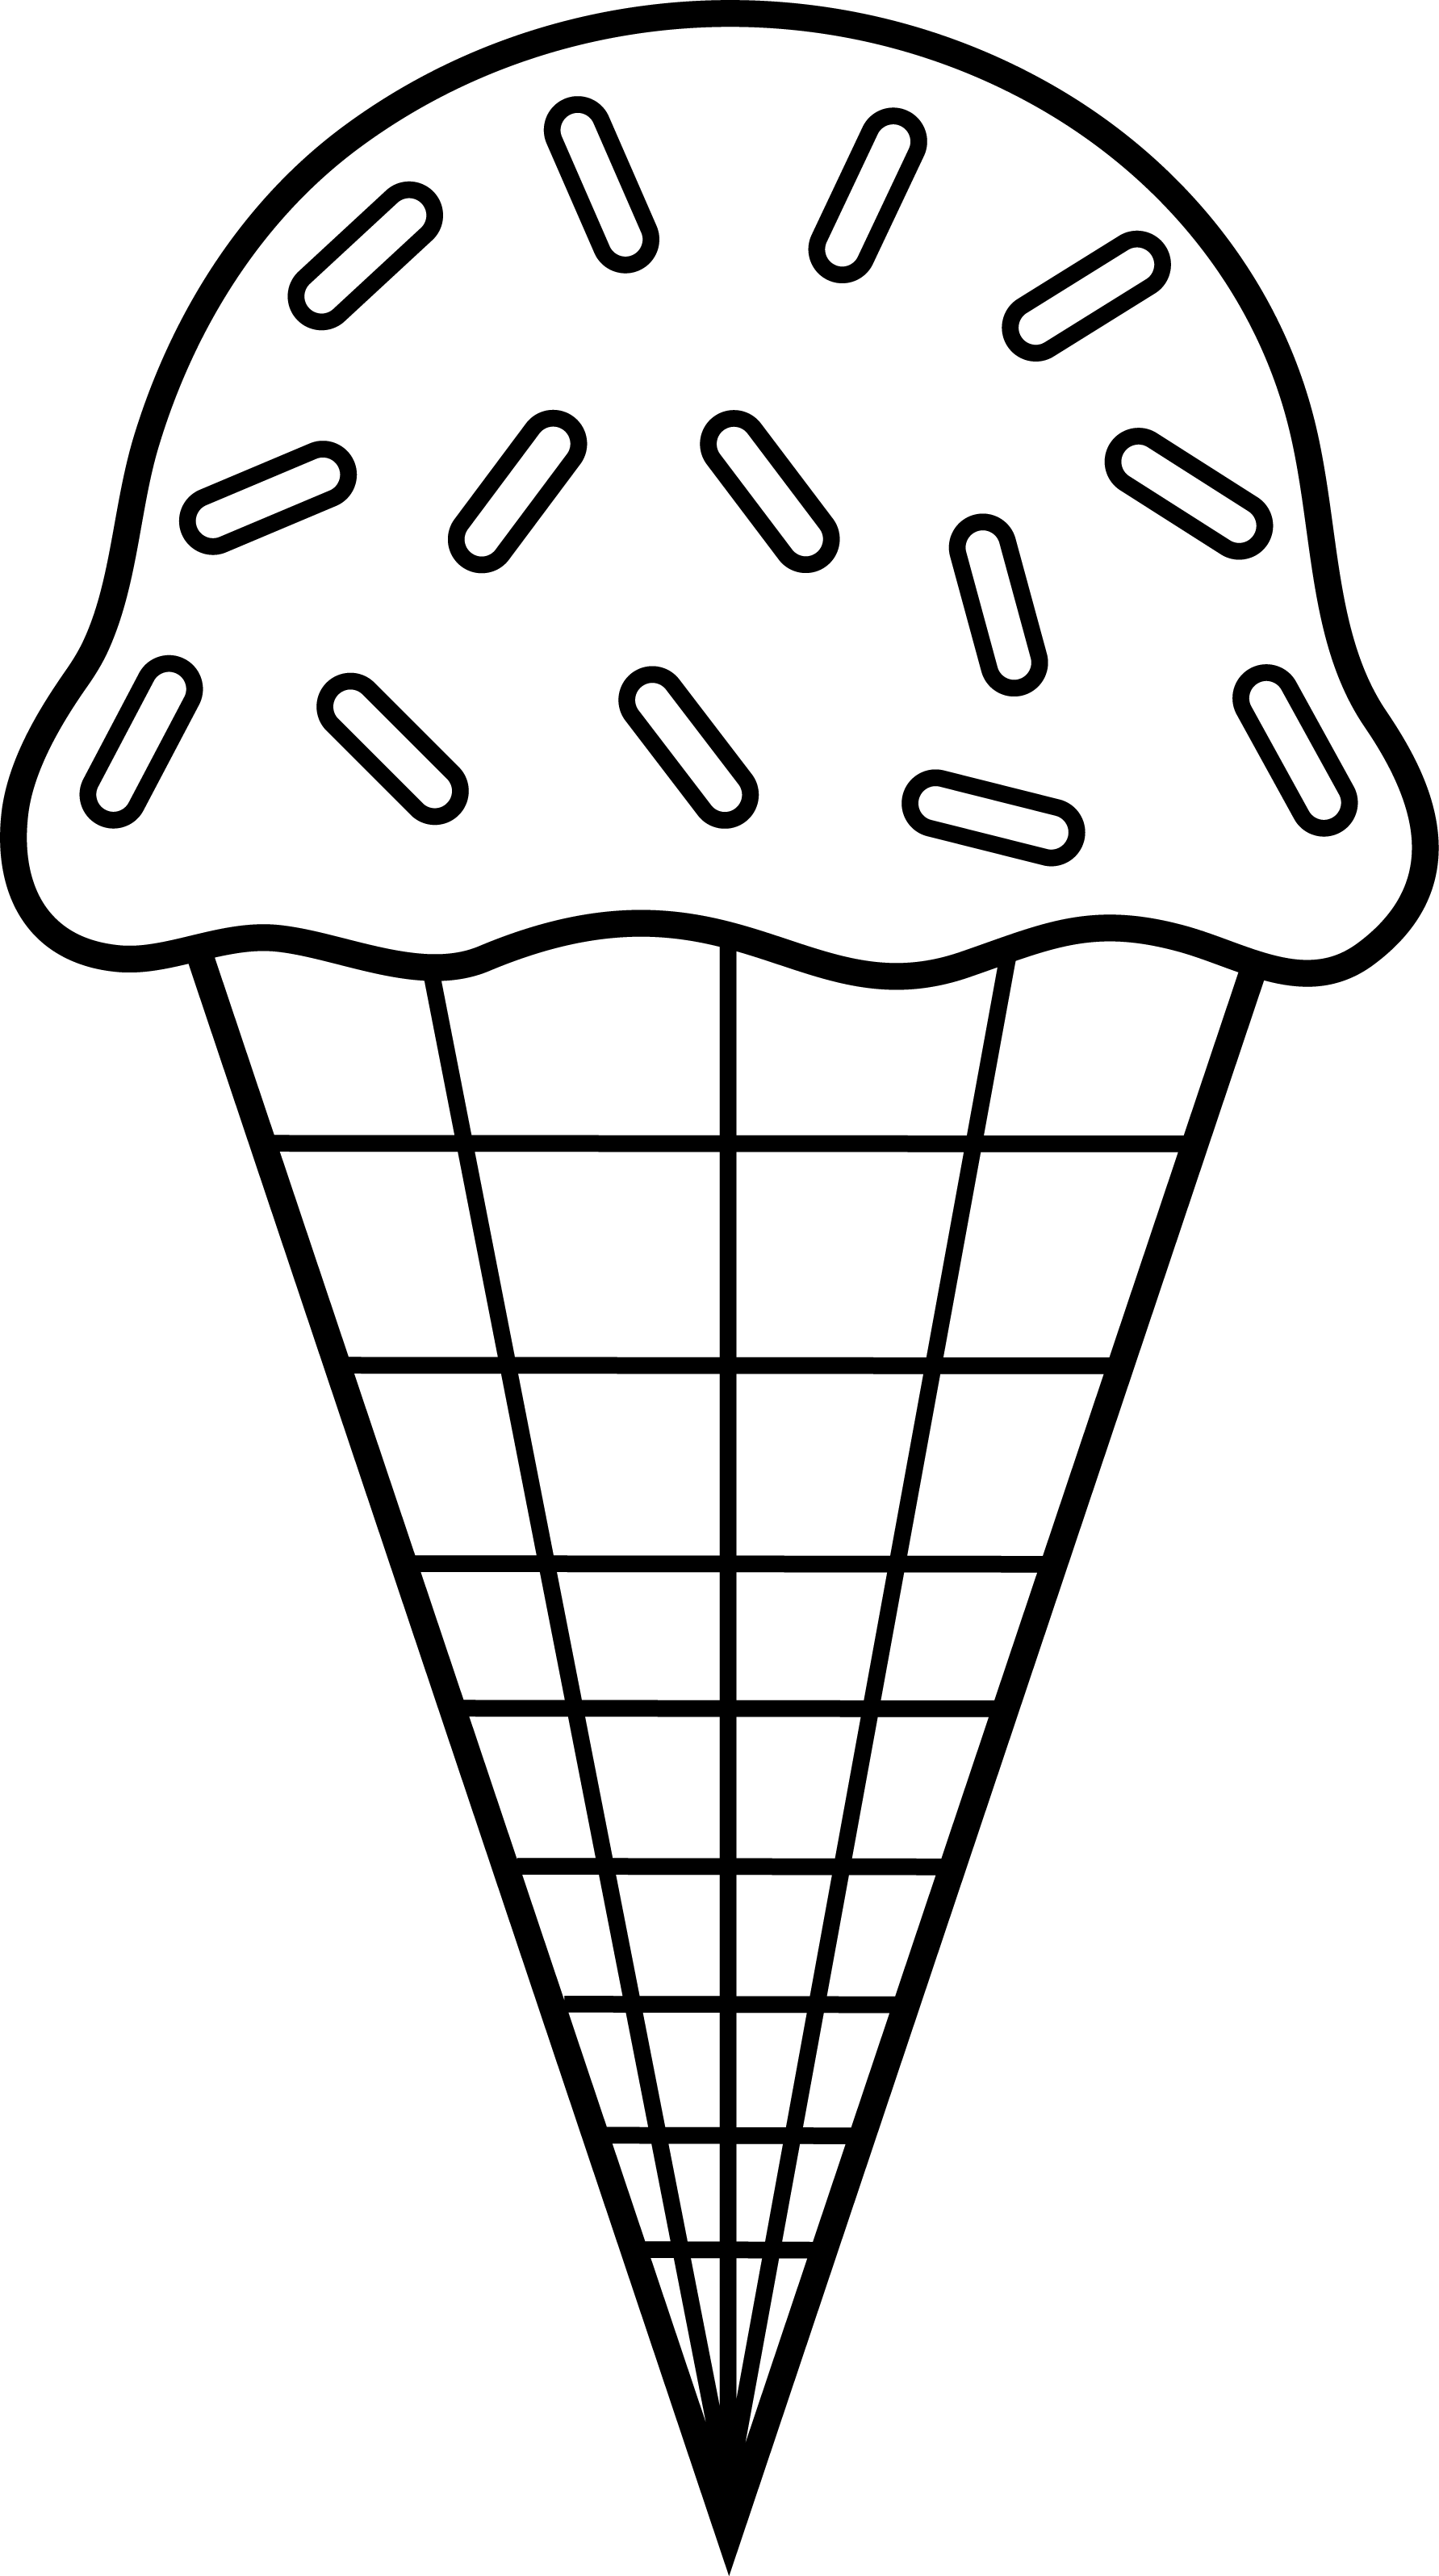 Ice Cream Cone Clip Art Black White | Clip art | Ice cream ...